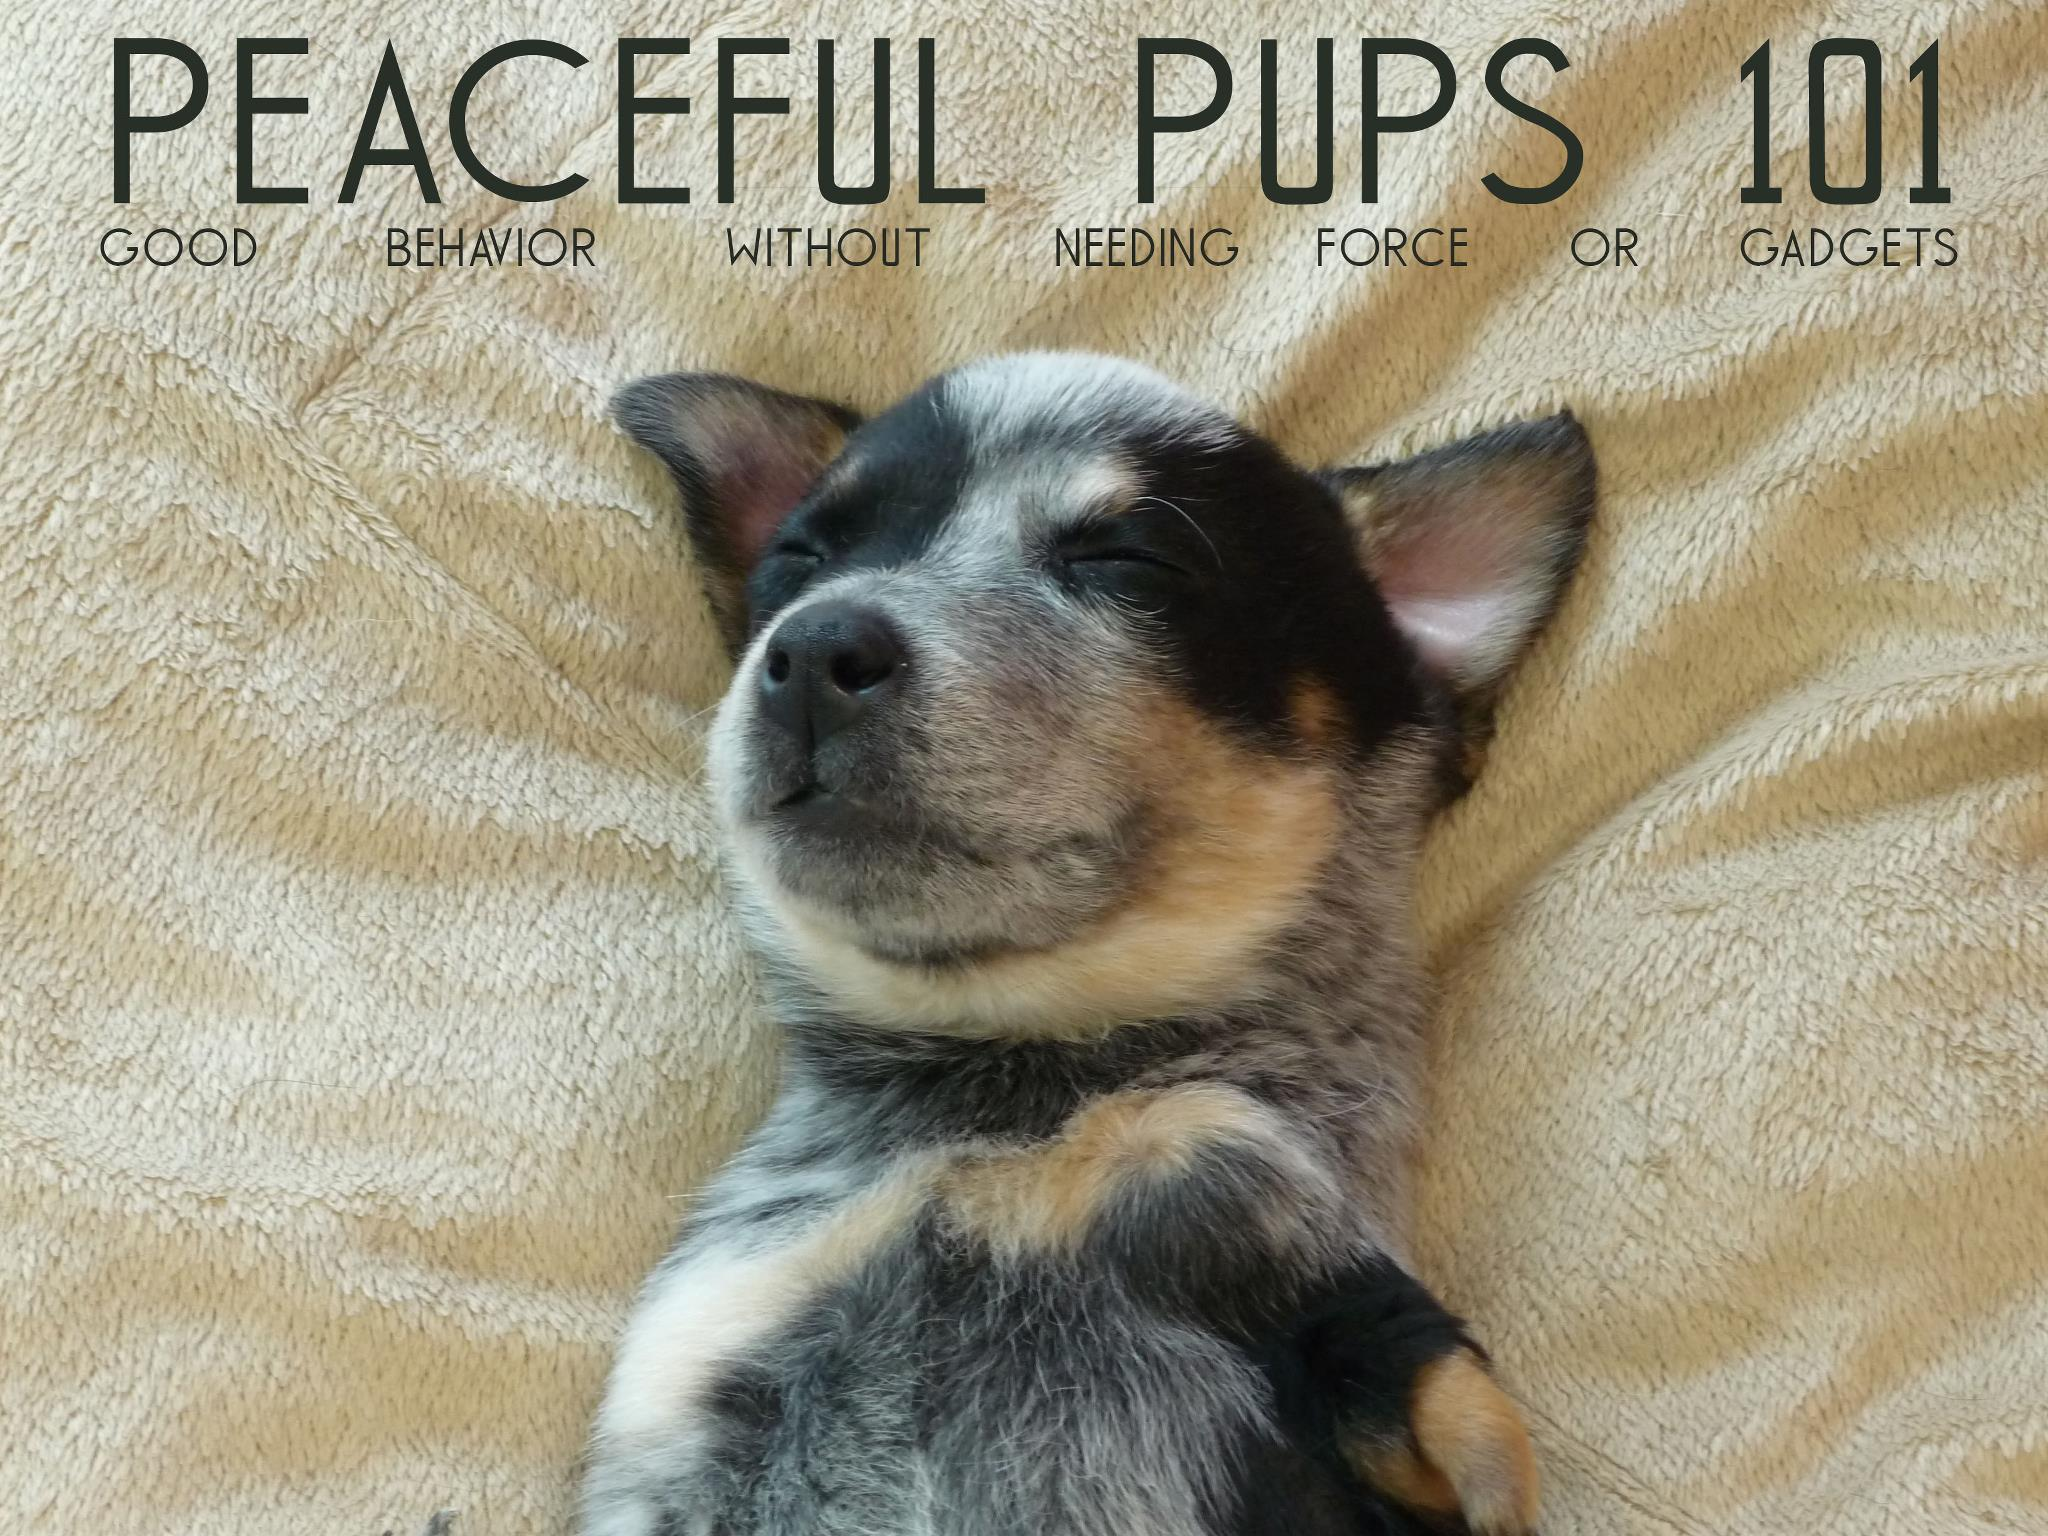 Peaceful Pups 101